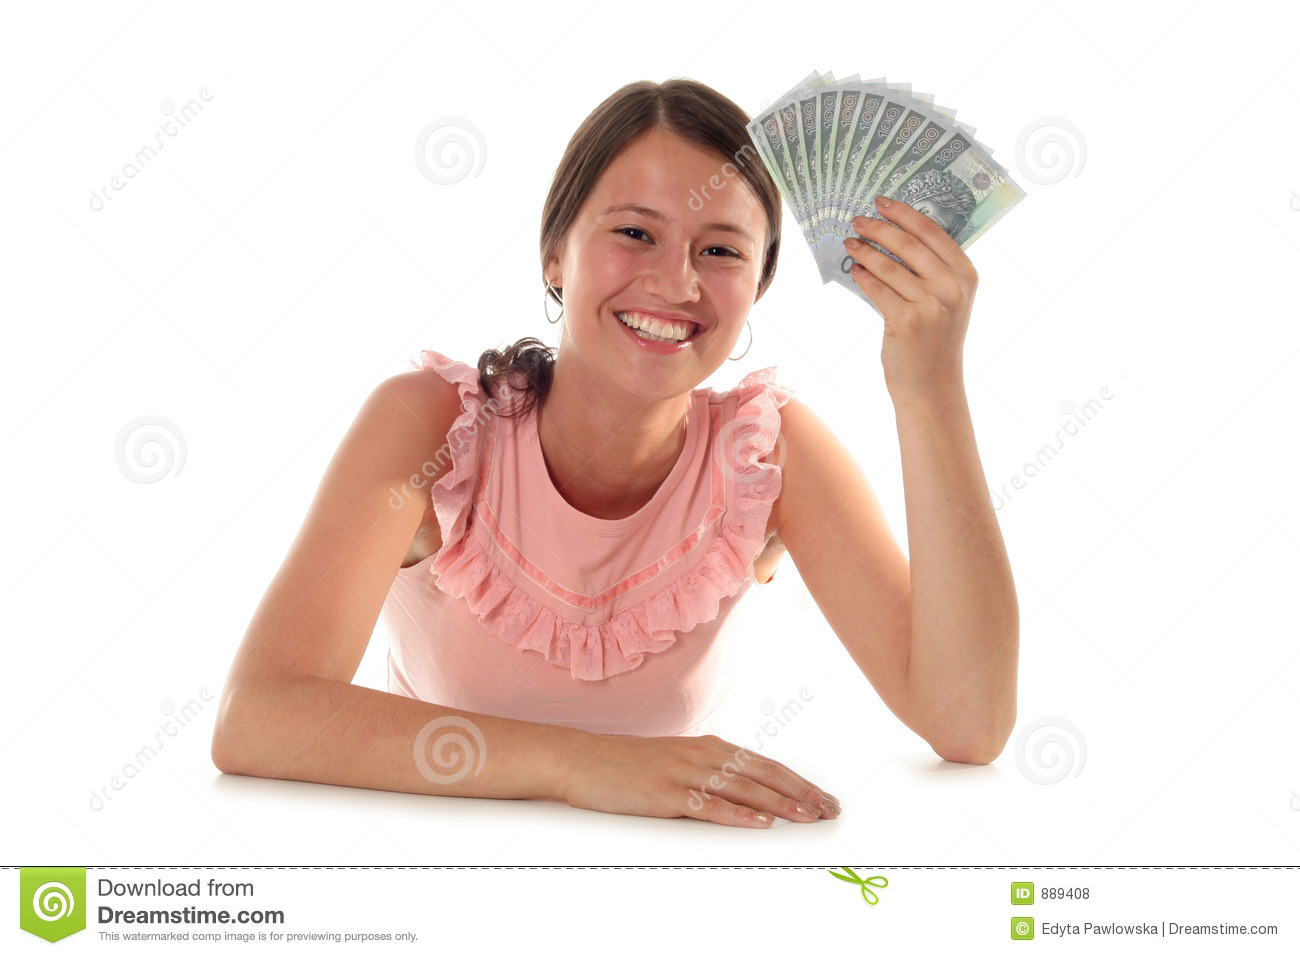 Woman Holding Money Royalty Free Stock Photos - Image: 889408